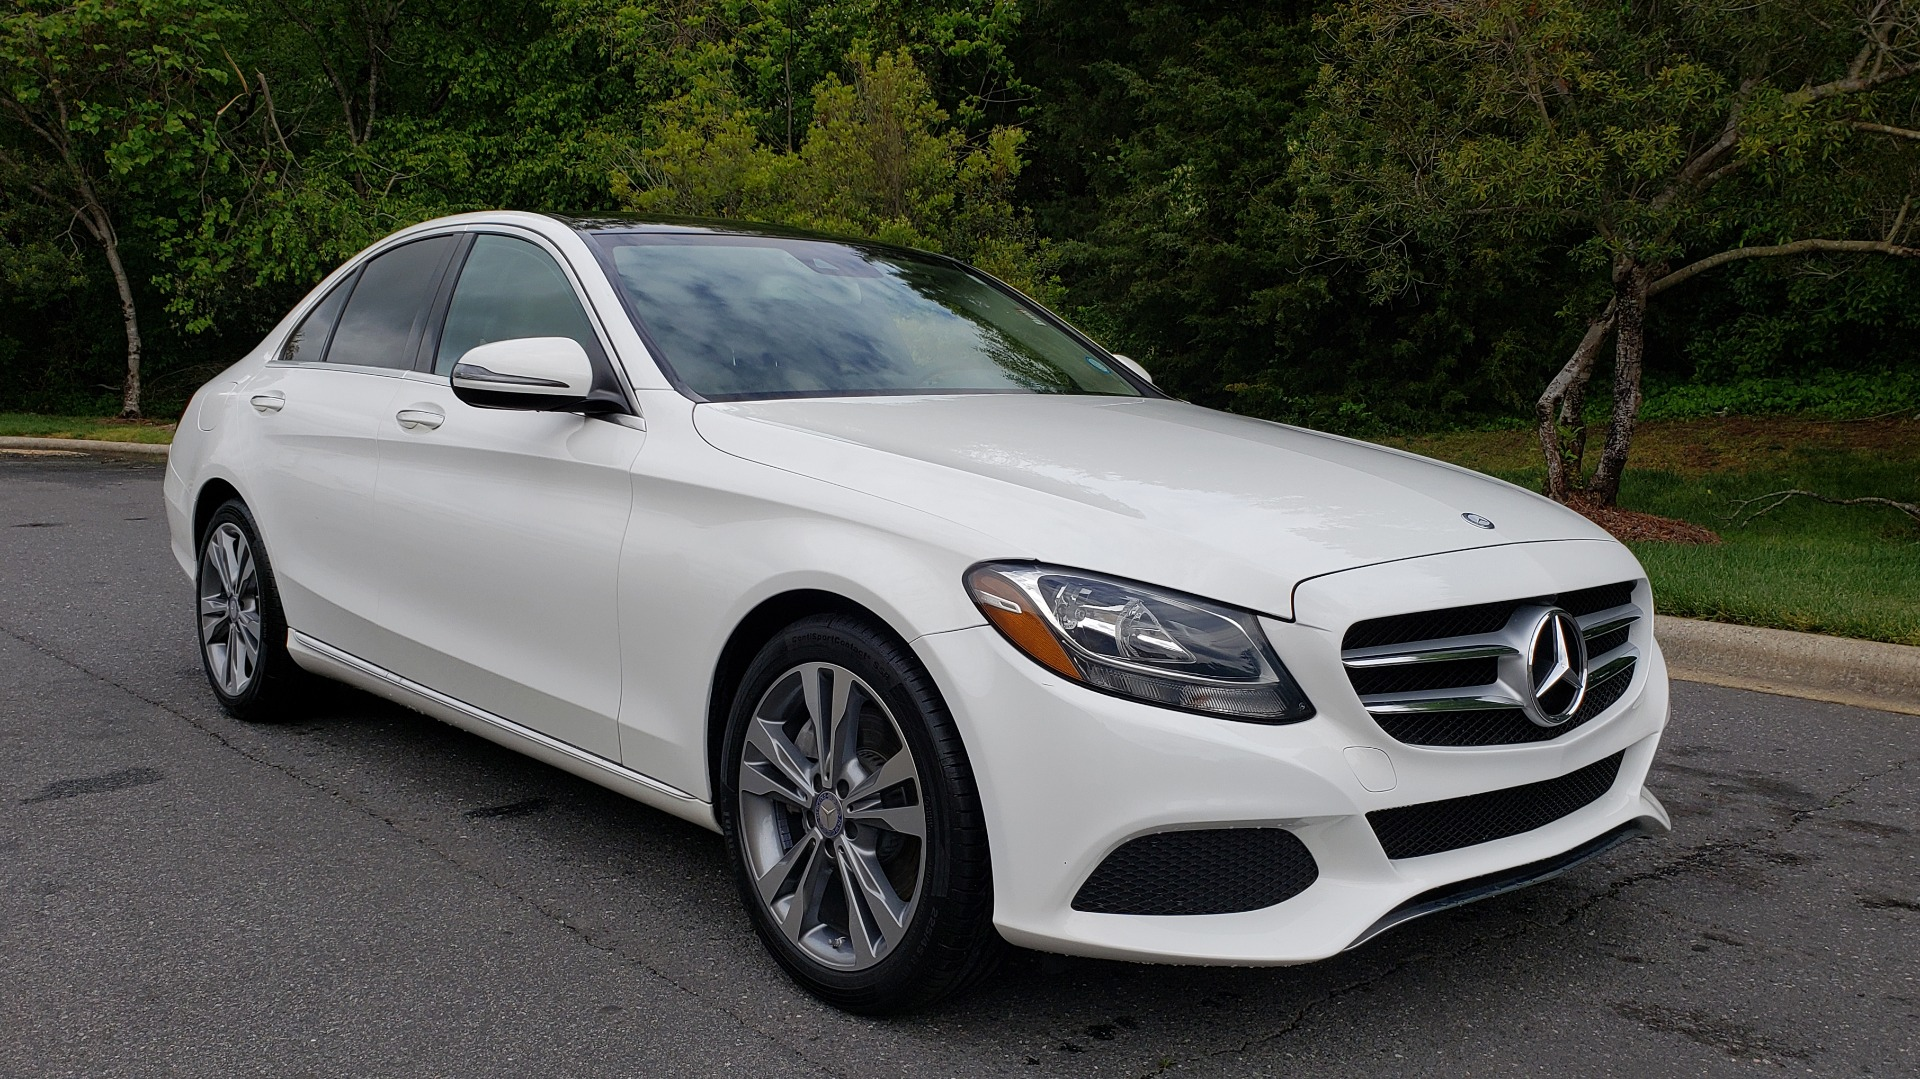 Used 2017 Mercedes-Benz C-Class C 300 PREMIUM / NAV / PANO-ROOF / HTD STS / REARVIEW for sale Sold at Formula Imports in Charlotte NC 28227 4